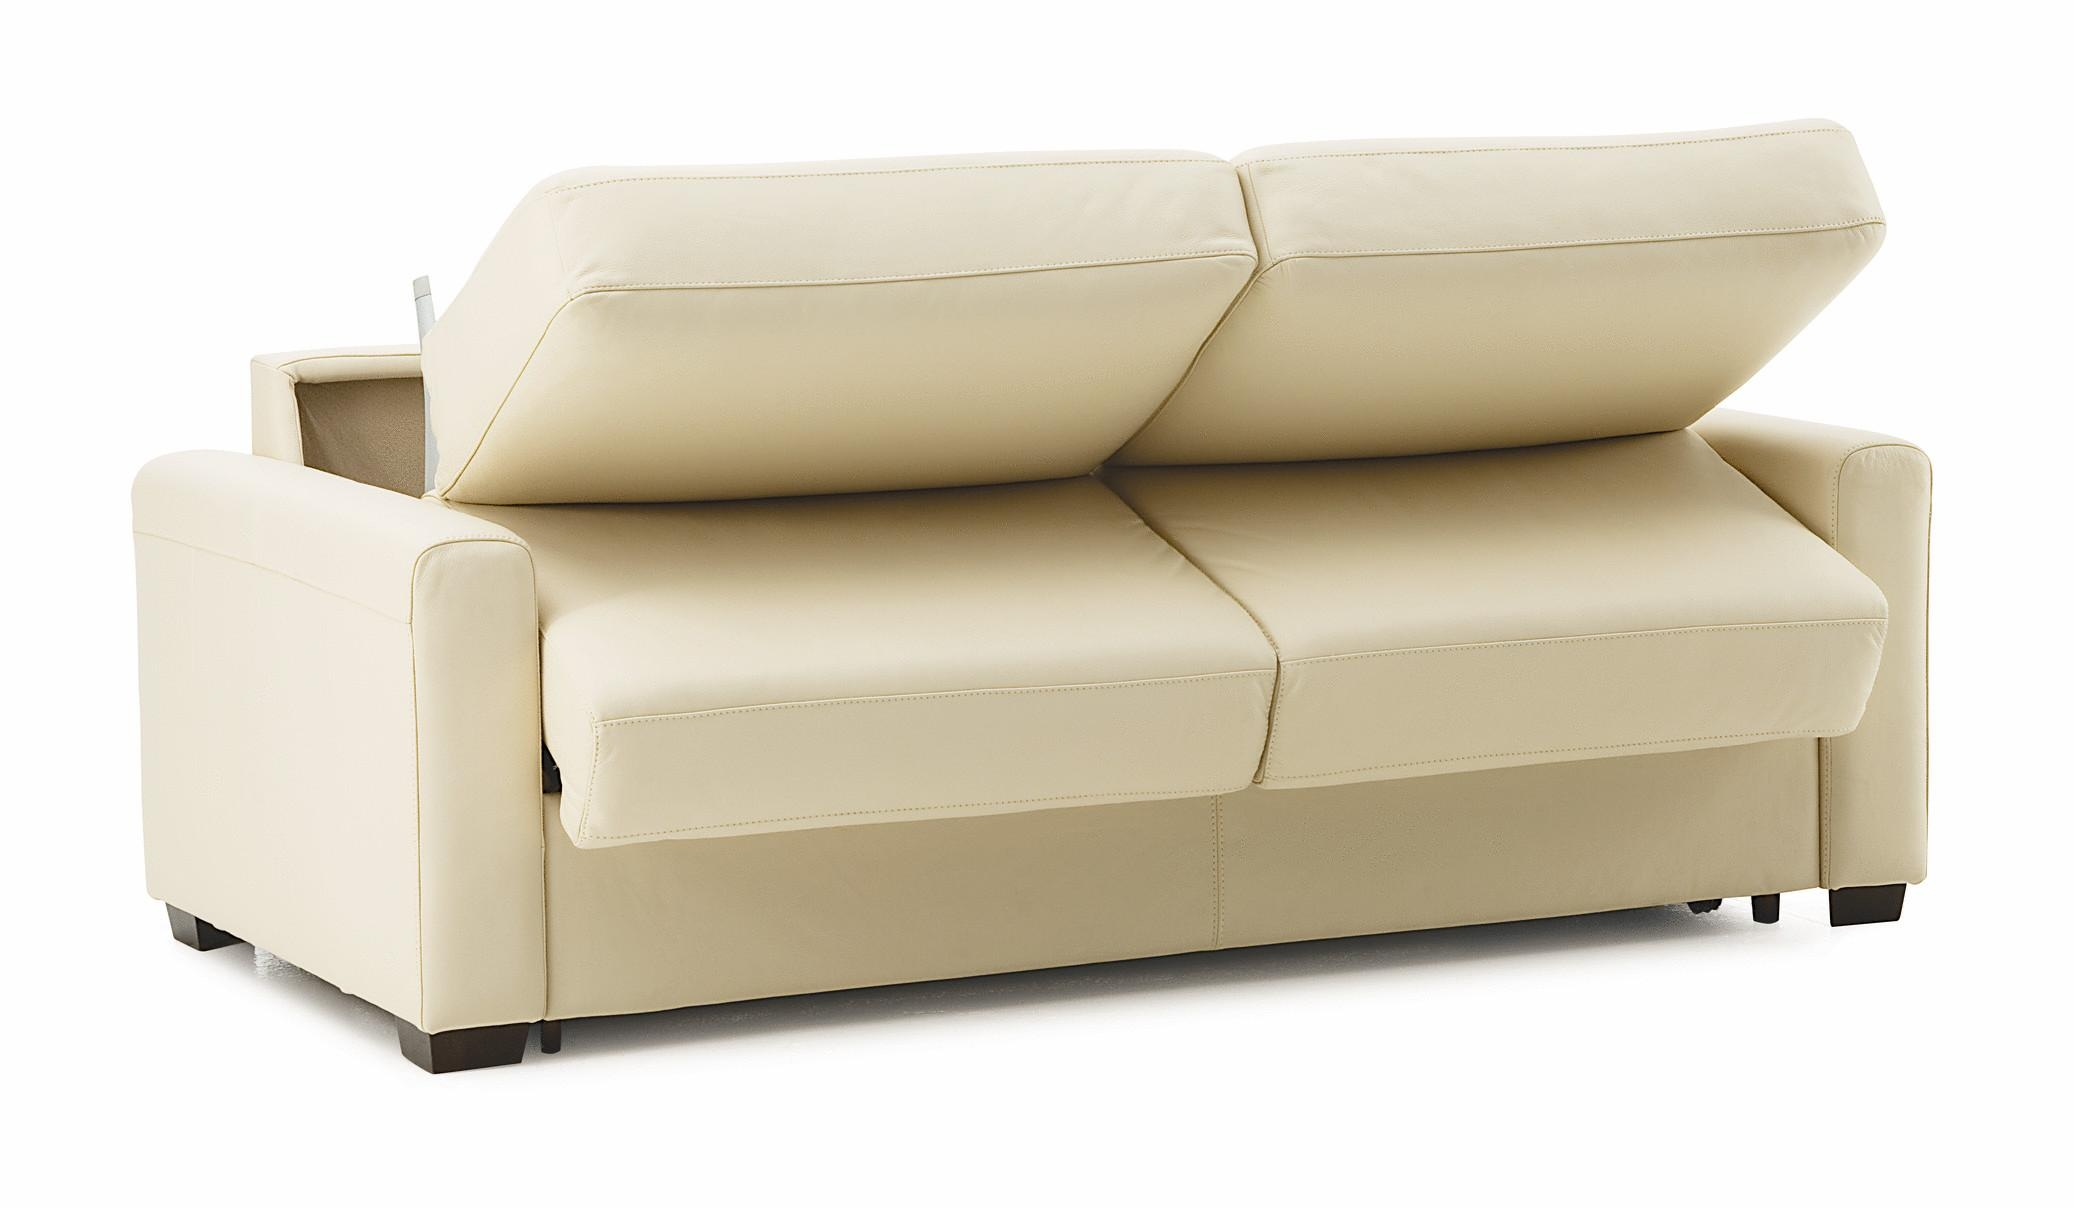 Comfortable Sofa Sleeper And Comfortable Sofa Bed › Most With Regard To Most Comfortable Sofabed (Image 5 of 22)